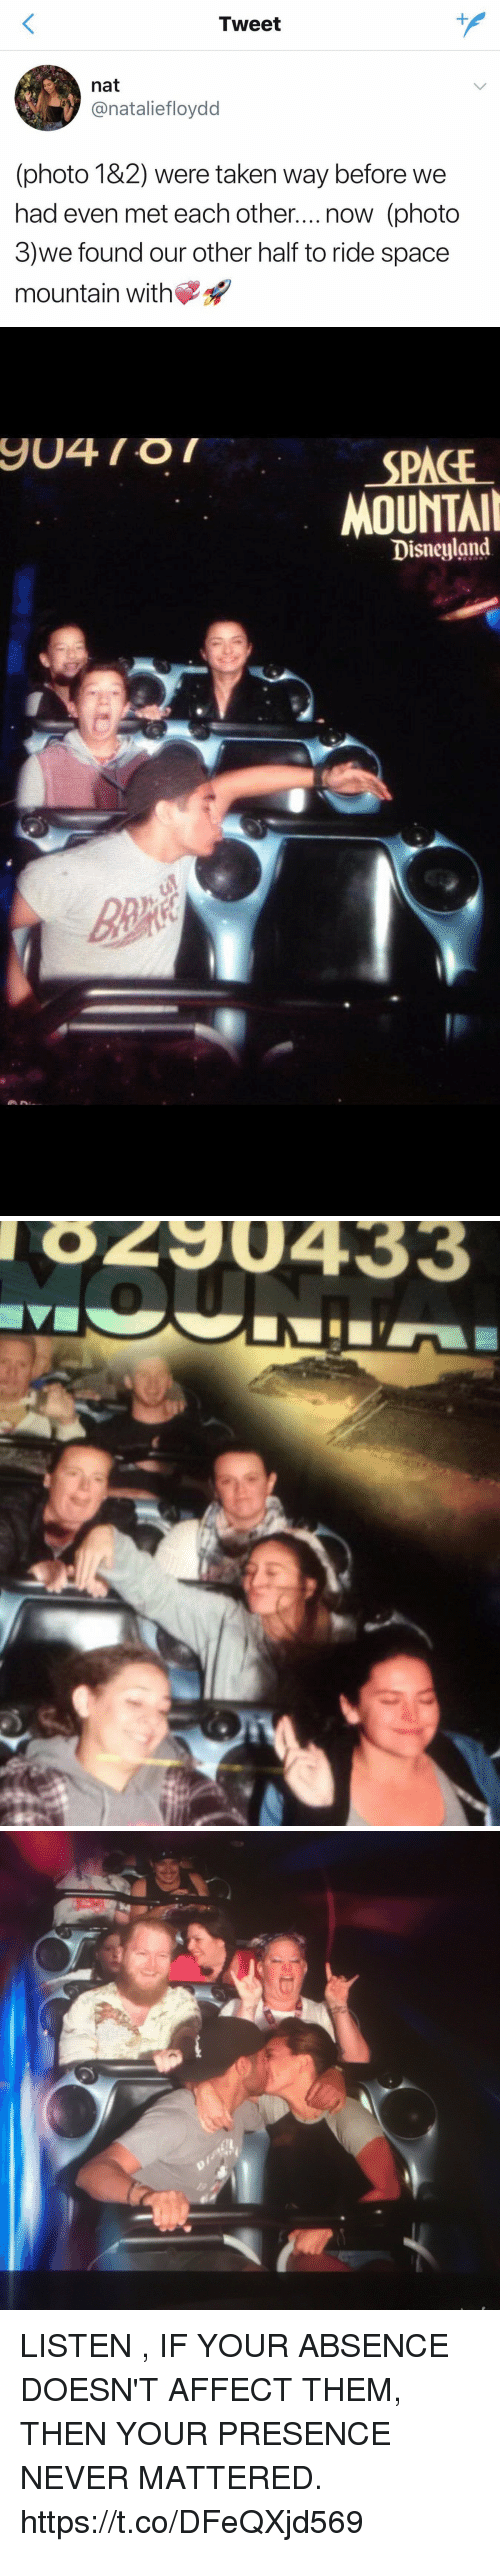 Disneyland, Taken, and Affect: Tweet  nat  onatalietloydd  (photo 182) were taken way before we  had even met each other....now (photo  3)we found our other half to ride space  mountain with   SPACE  MOUNTAI  Disneyland   8290433 LISTEN , IF YOUR ABSENCE DOESN'T AFFECT THEM, THEN YOUR PRESENCE NEVER MATTERED. https://t.co/DFeQXjd569